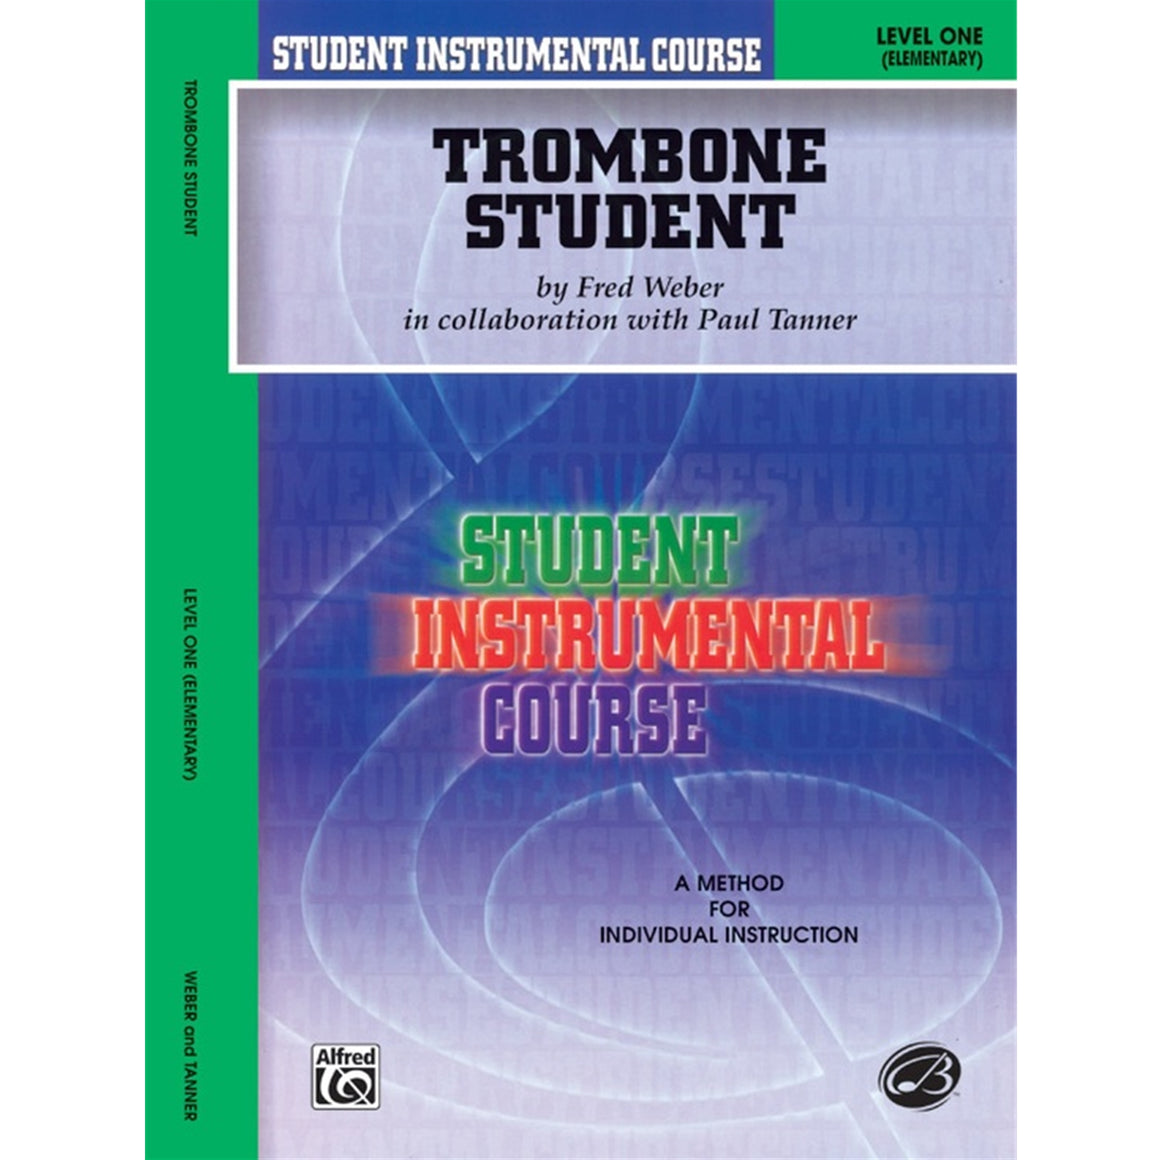 ALFRED BIC00156A Student Instrumental Course: Trombone Student, Level I [Trombone]